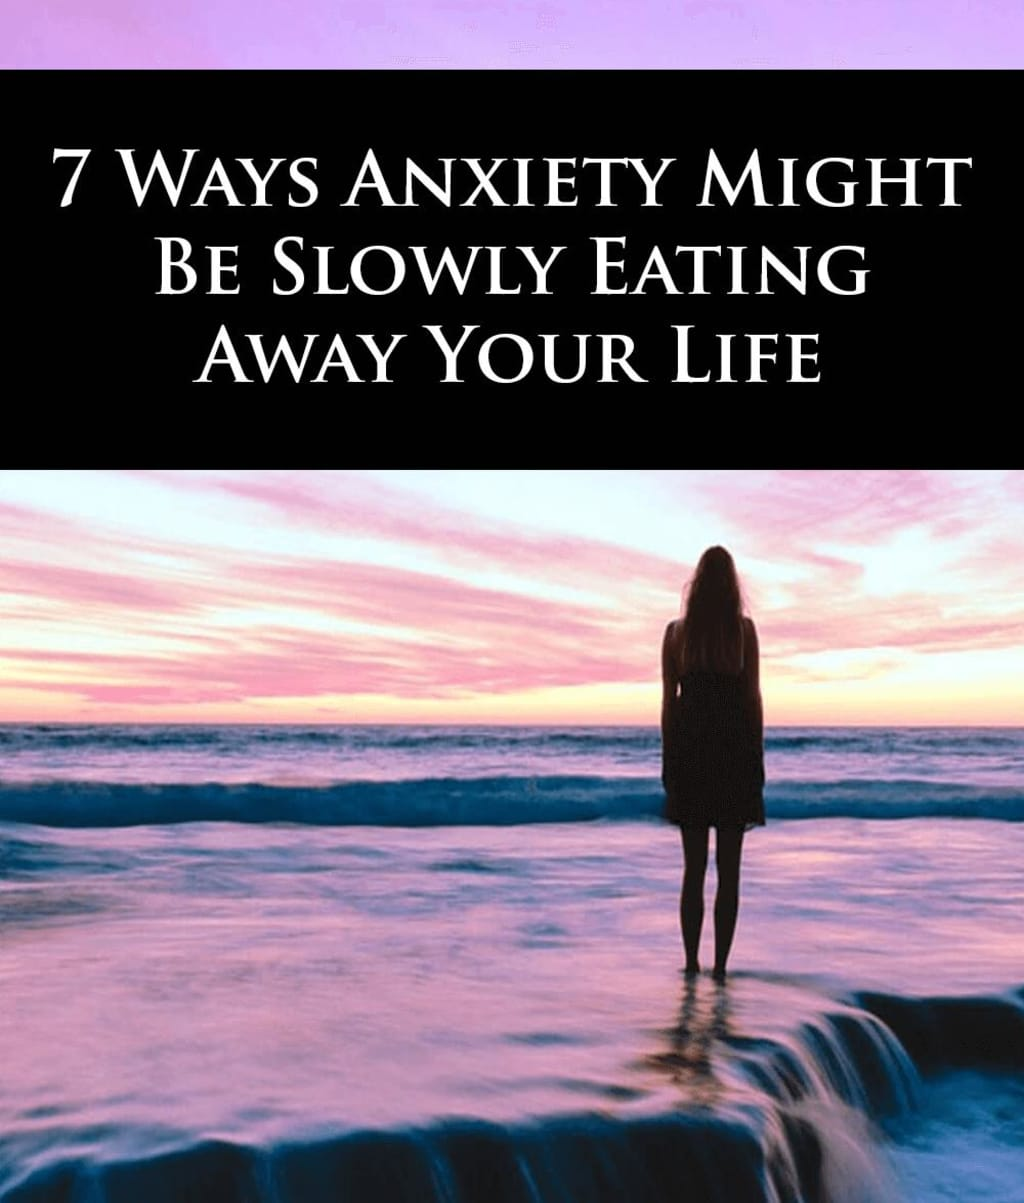 7 WAYSANXIETY MIGHT BESLOWLY EATING AWAY YOUR LIFE